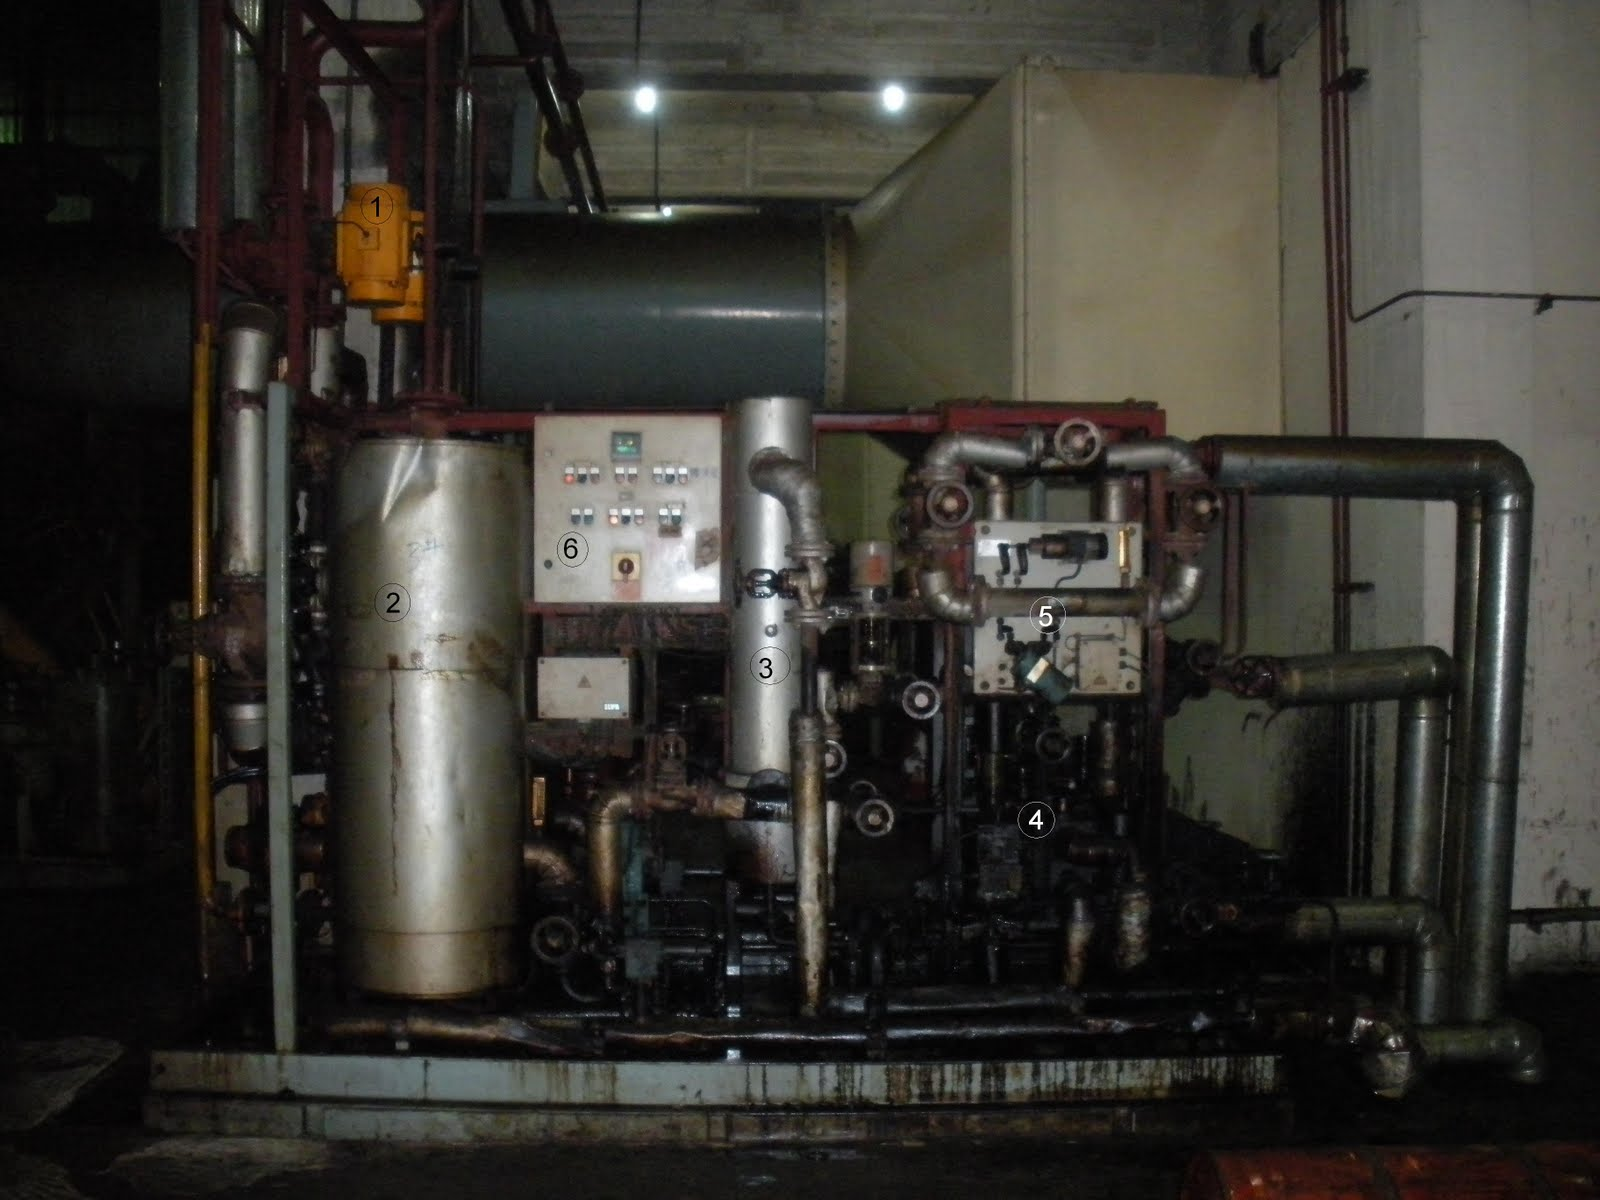 Hfo Booster Module Or Fuel Conditioning Viscosity Diesel Power Plant Flow Diagram Main Components